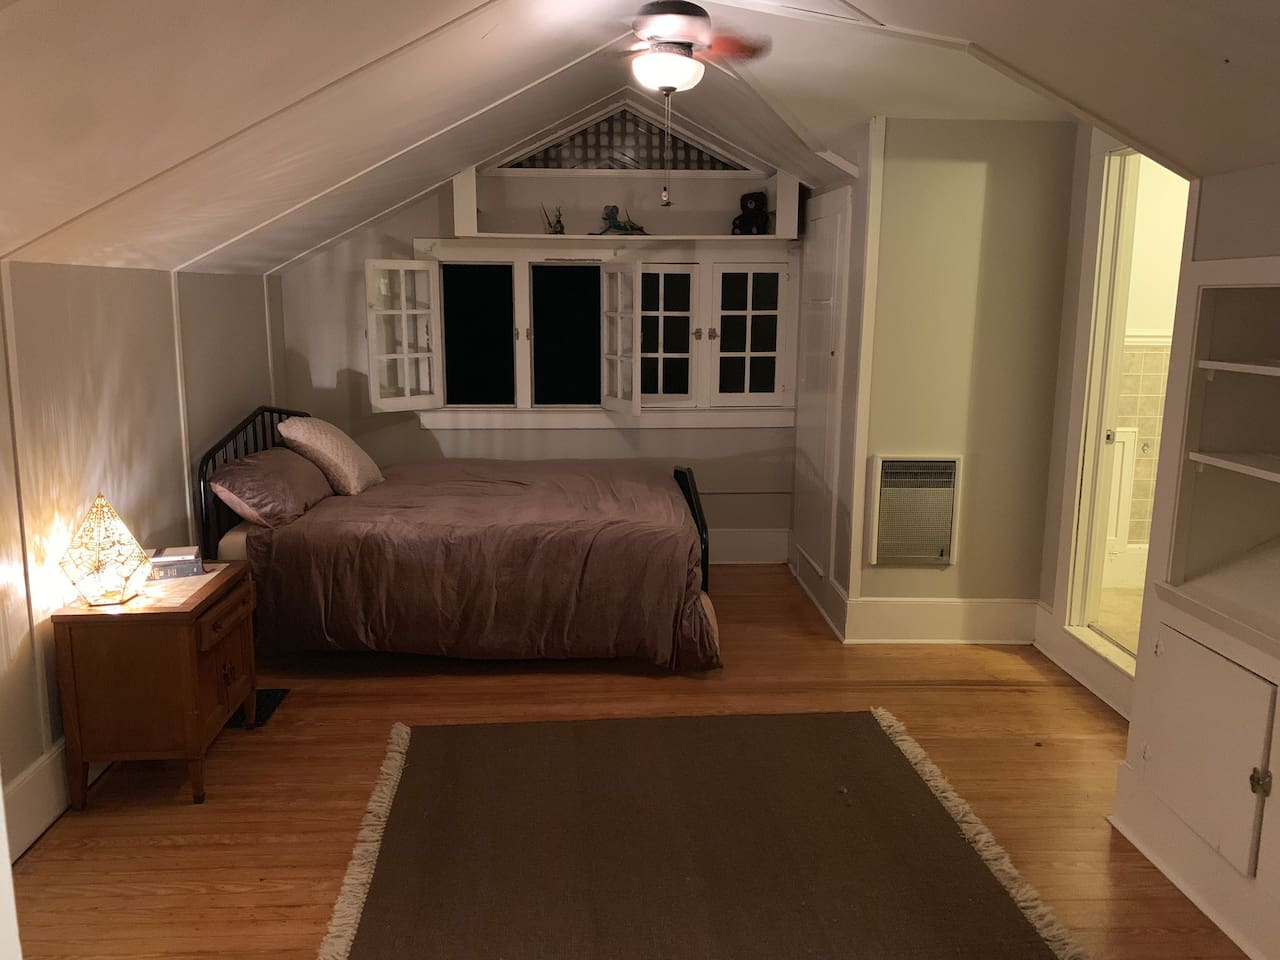 Queen Bed: memory foam mattress, bed linens, two pillows, comforter, ceiling fan  Steps up to room